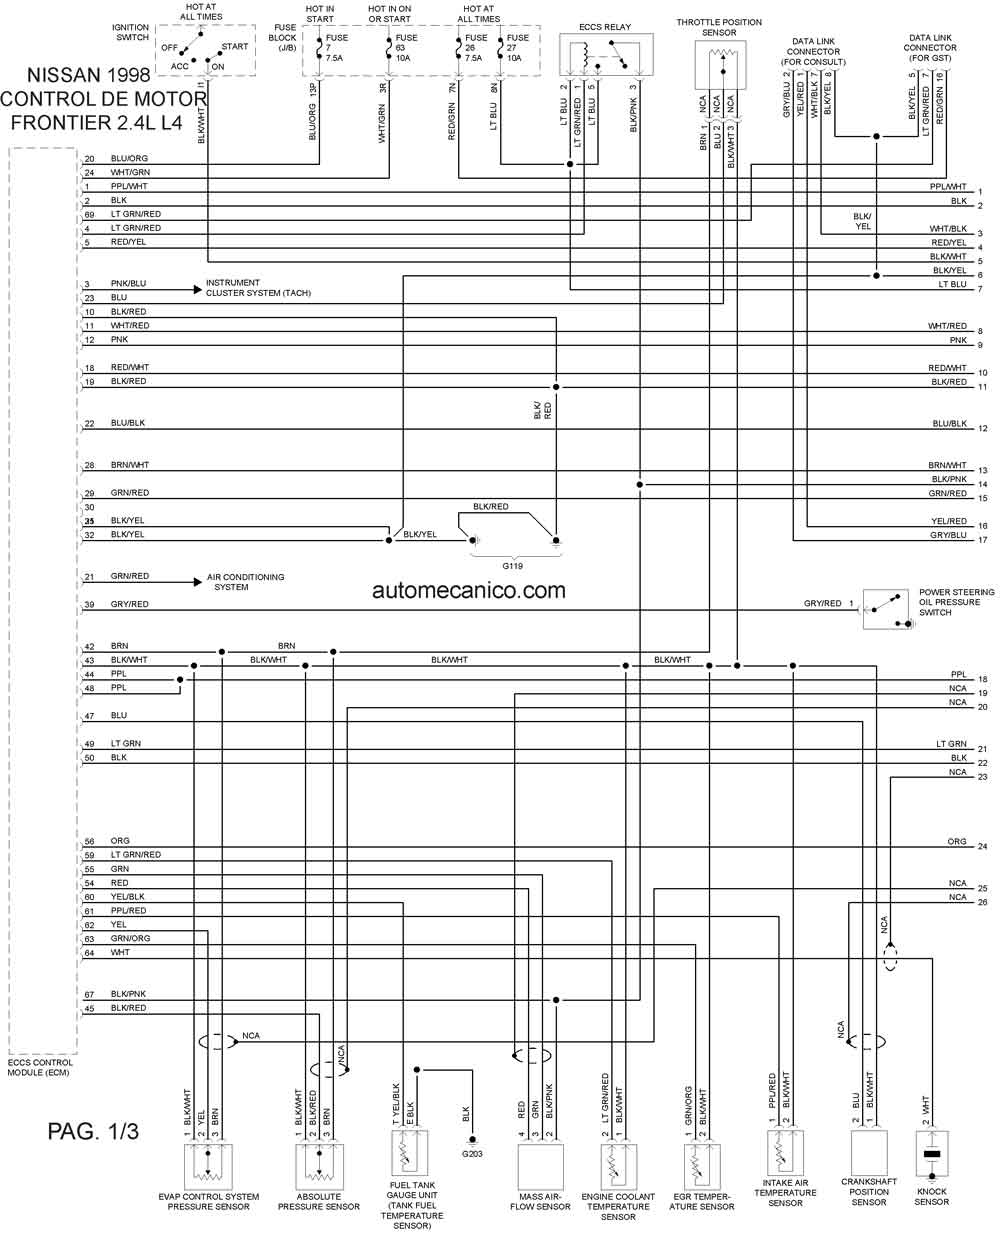 Wiring Diagram For Nissan Pulsar Stereo : Nissan pulsar n stereo wiring diagram pathfinder